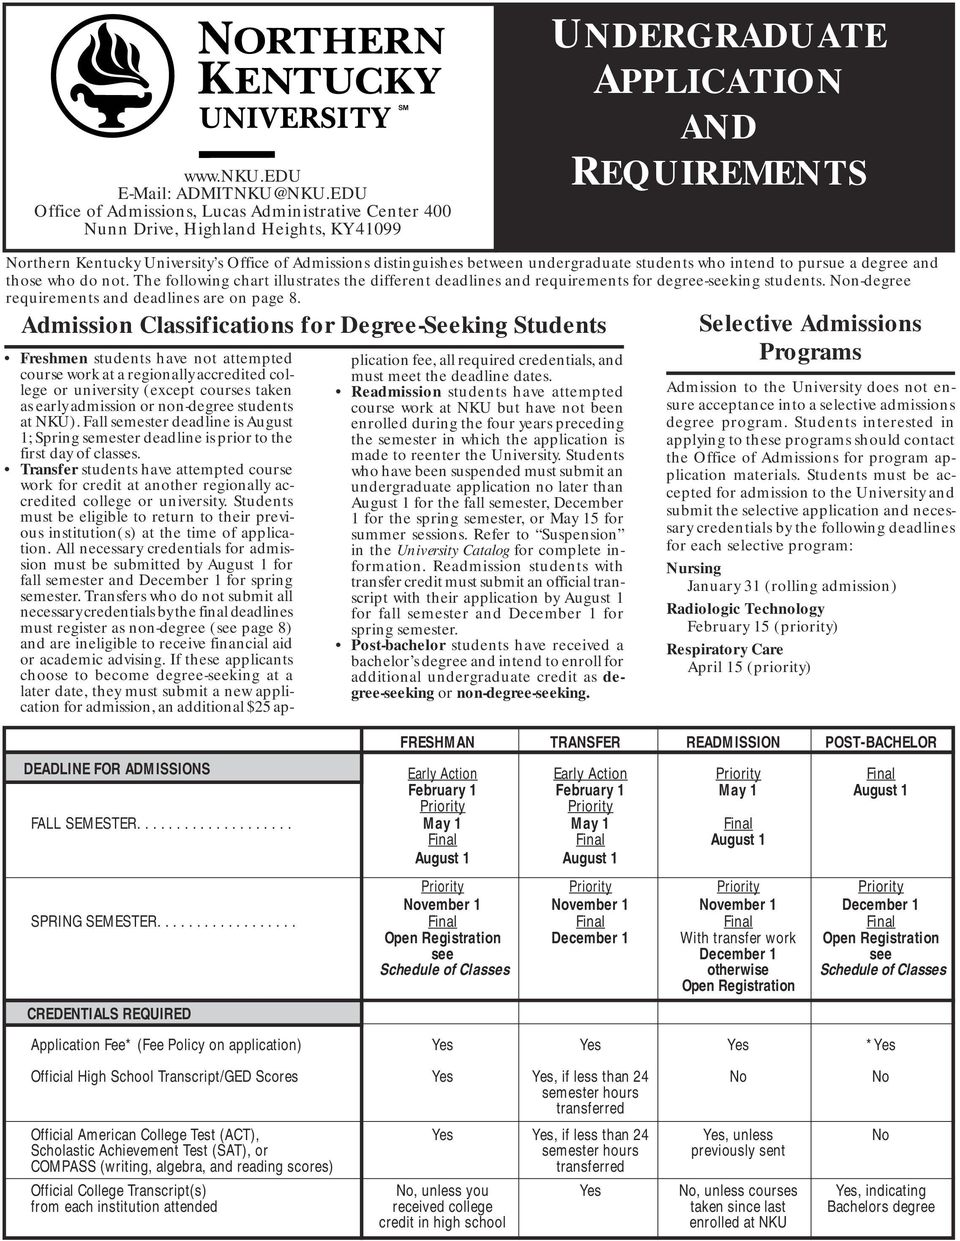 distinguishes between undergraduate students who intend to pursue a degree and those who do not. The following chart illustrates the different deadlines and requirements for degree-seeking students.